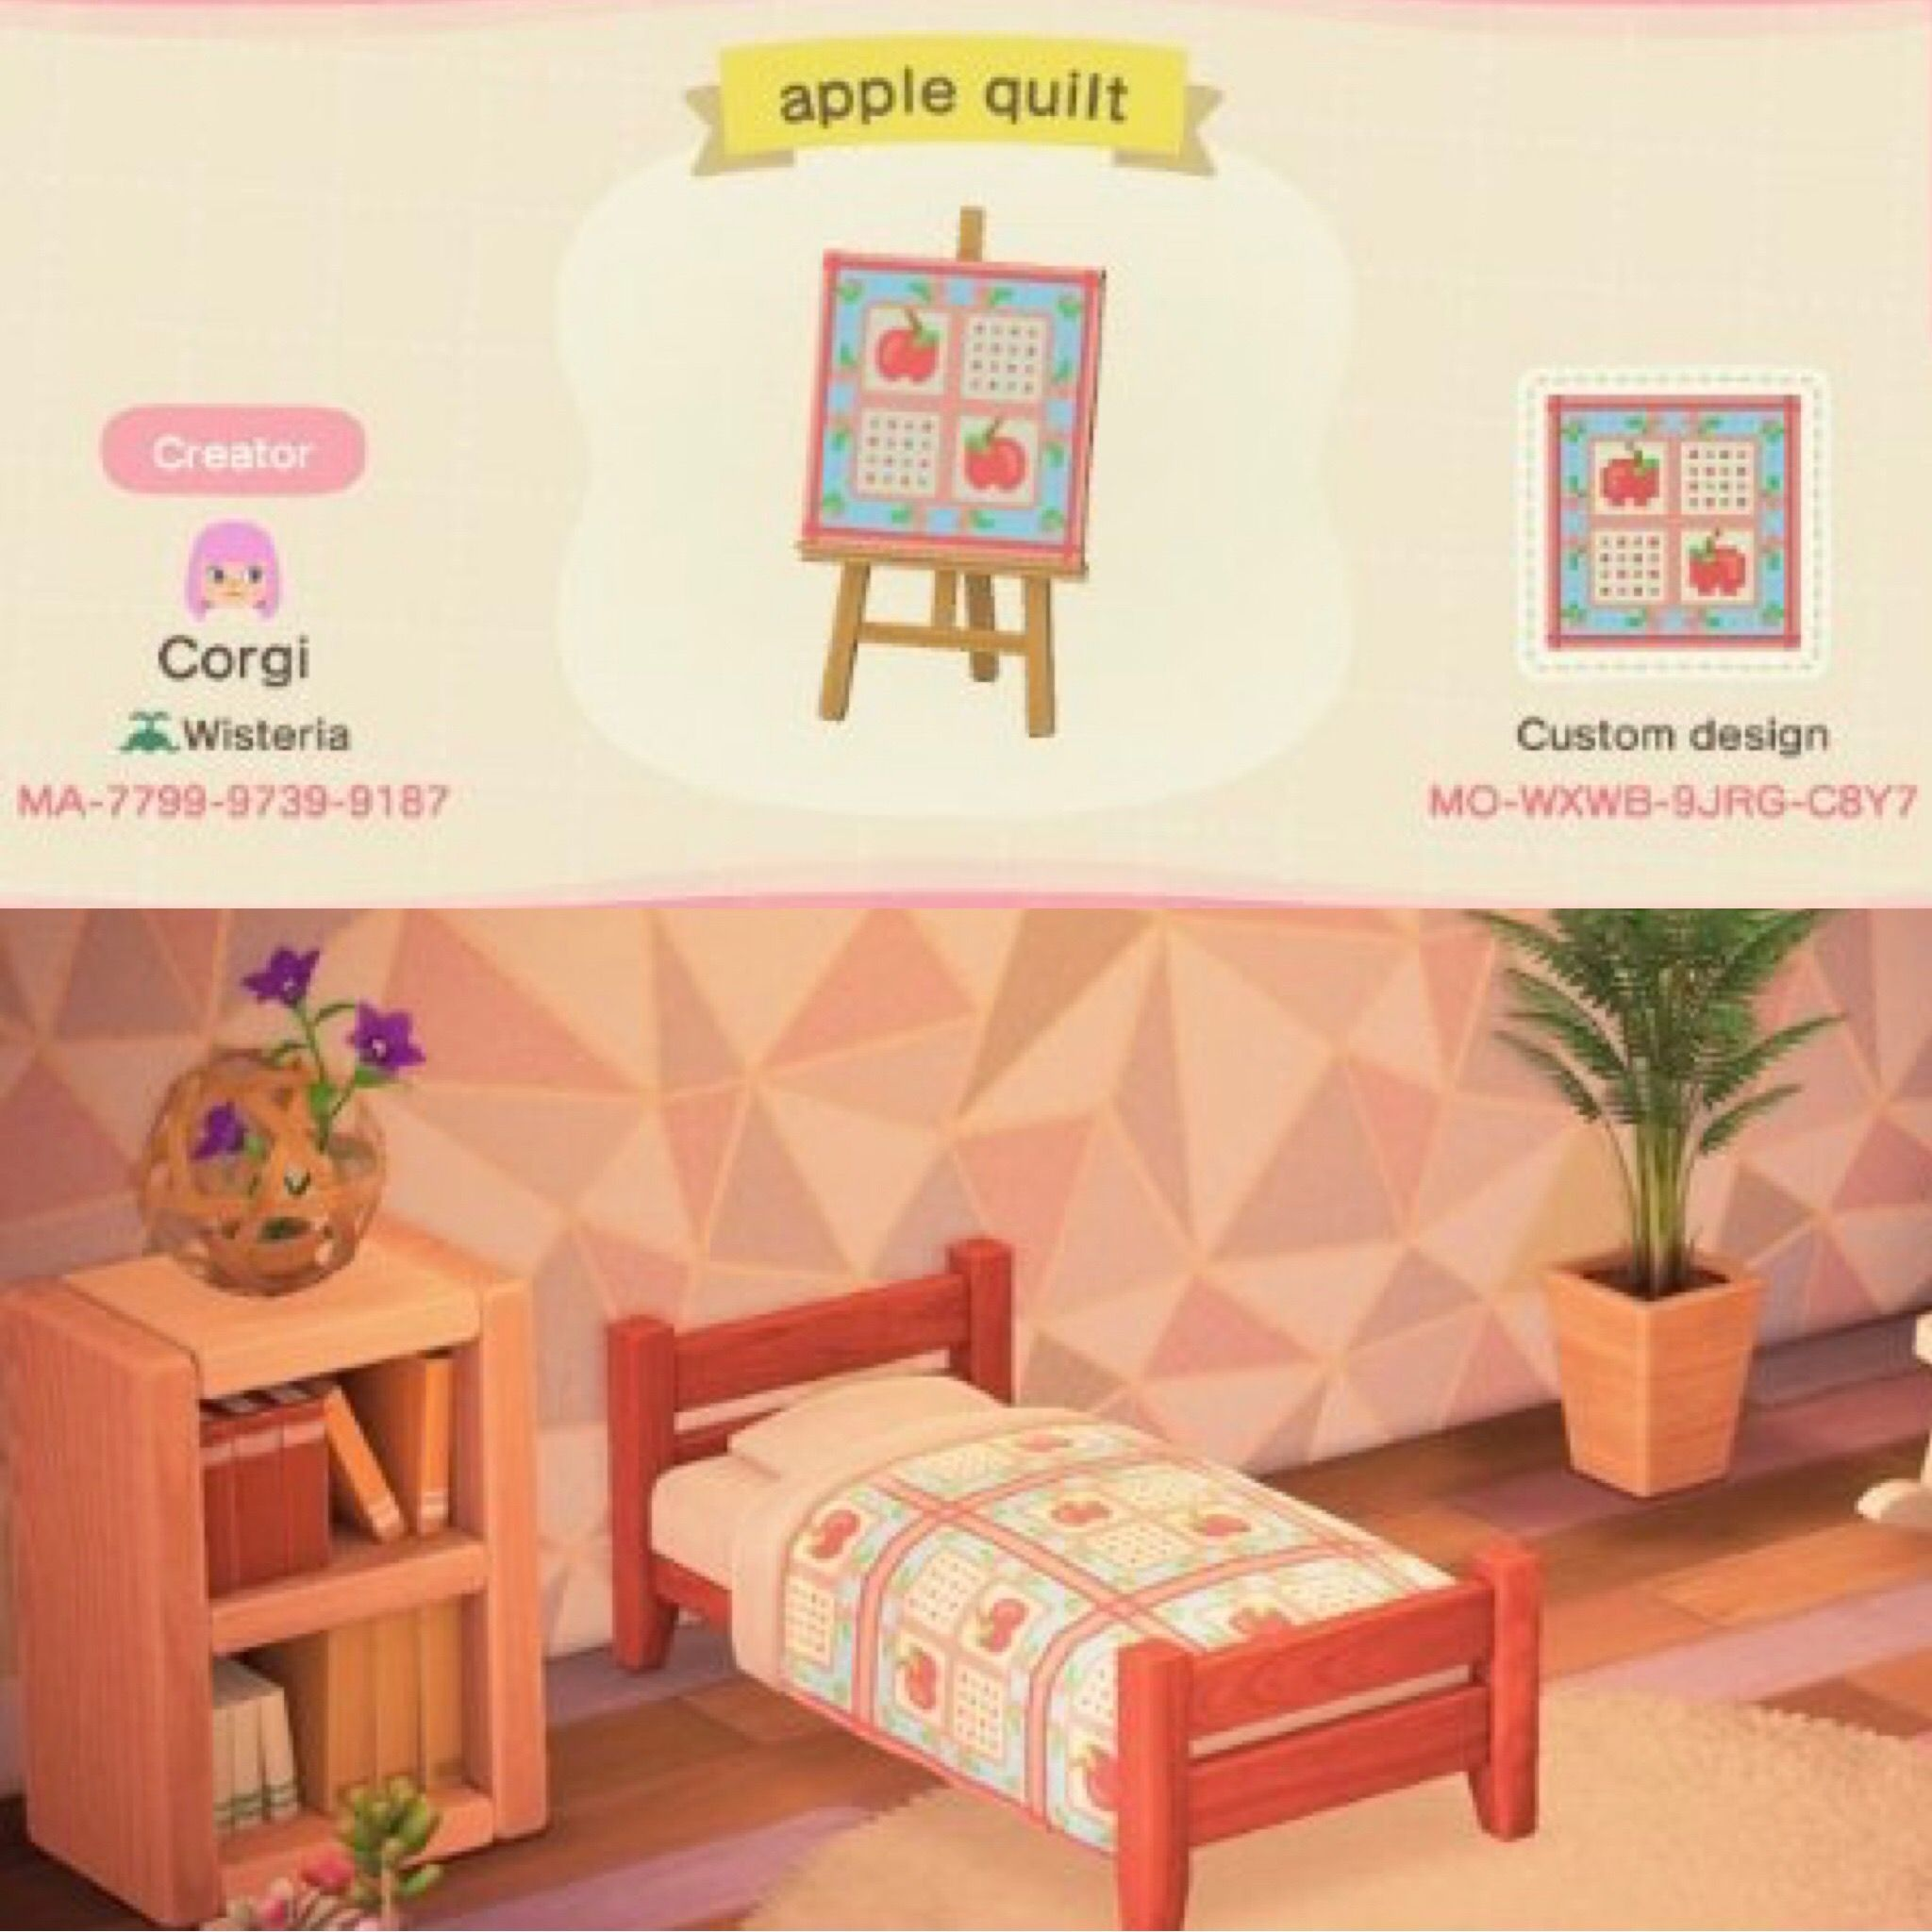 Pin By Angel Medic On Animal Crossing New Horizons Designs Animal Crossing Game Animal Crossing Animal Crossing Qr